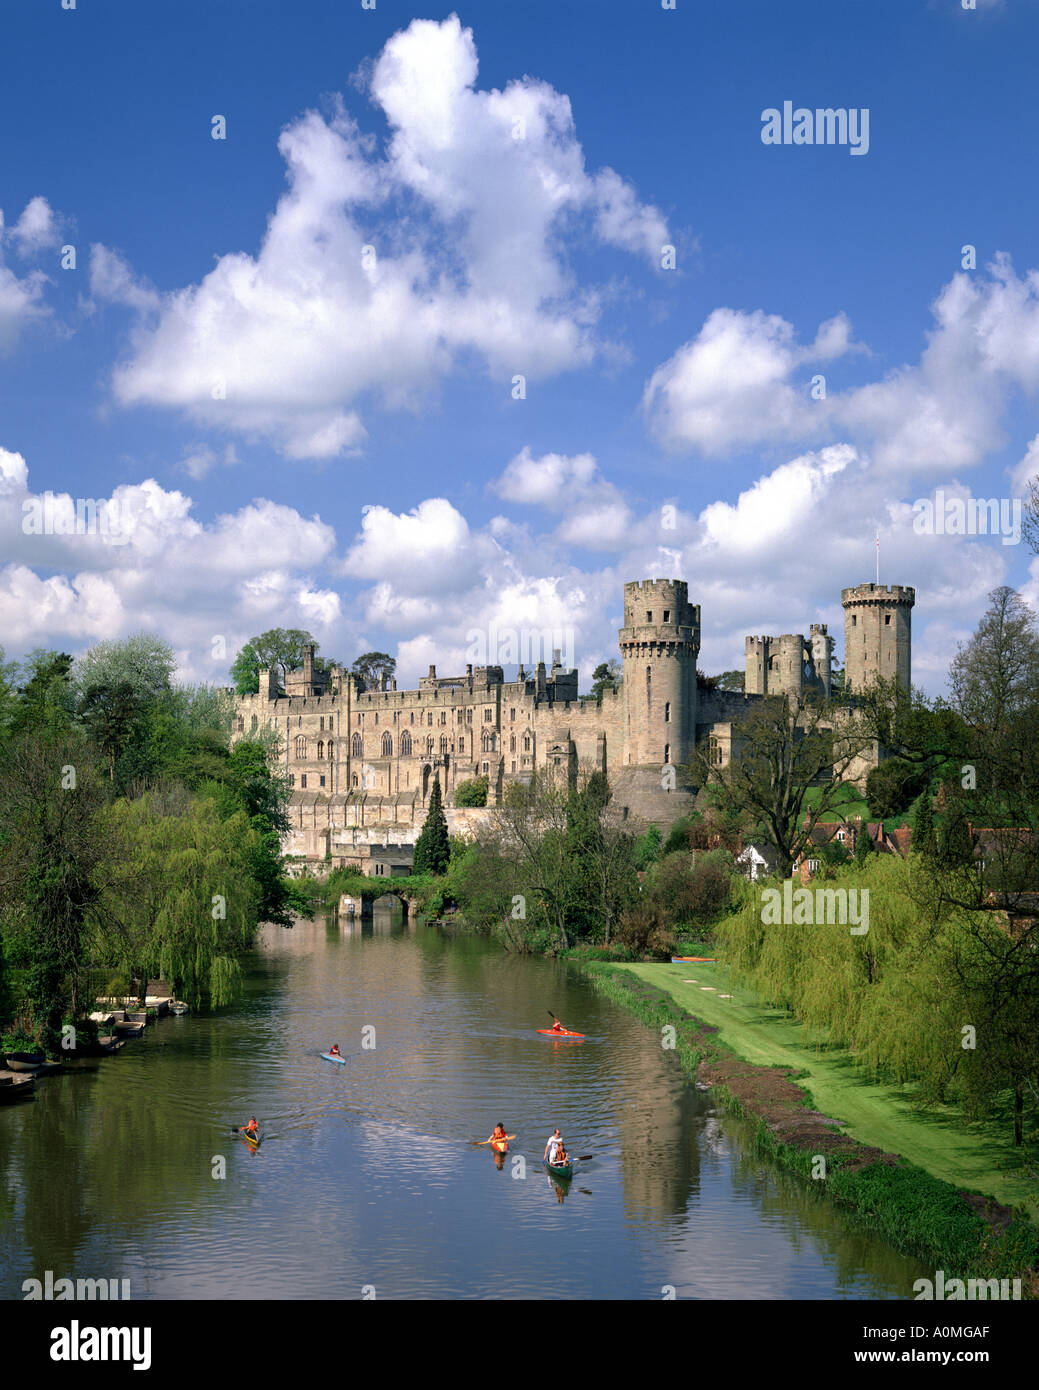 GB - WARWICKSHIRE: Warwick Castle and River Avon - Stock Image